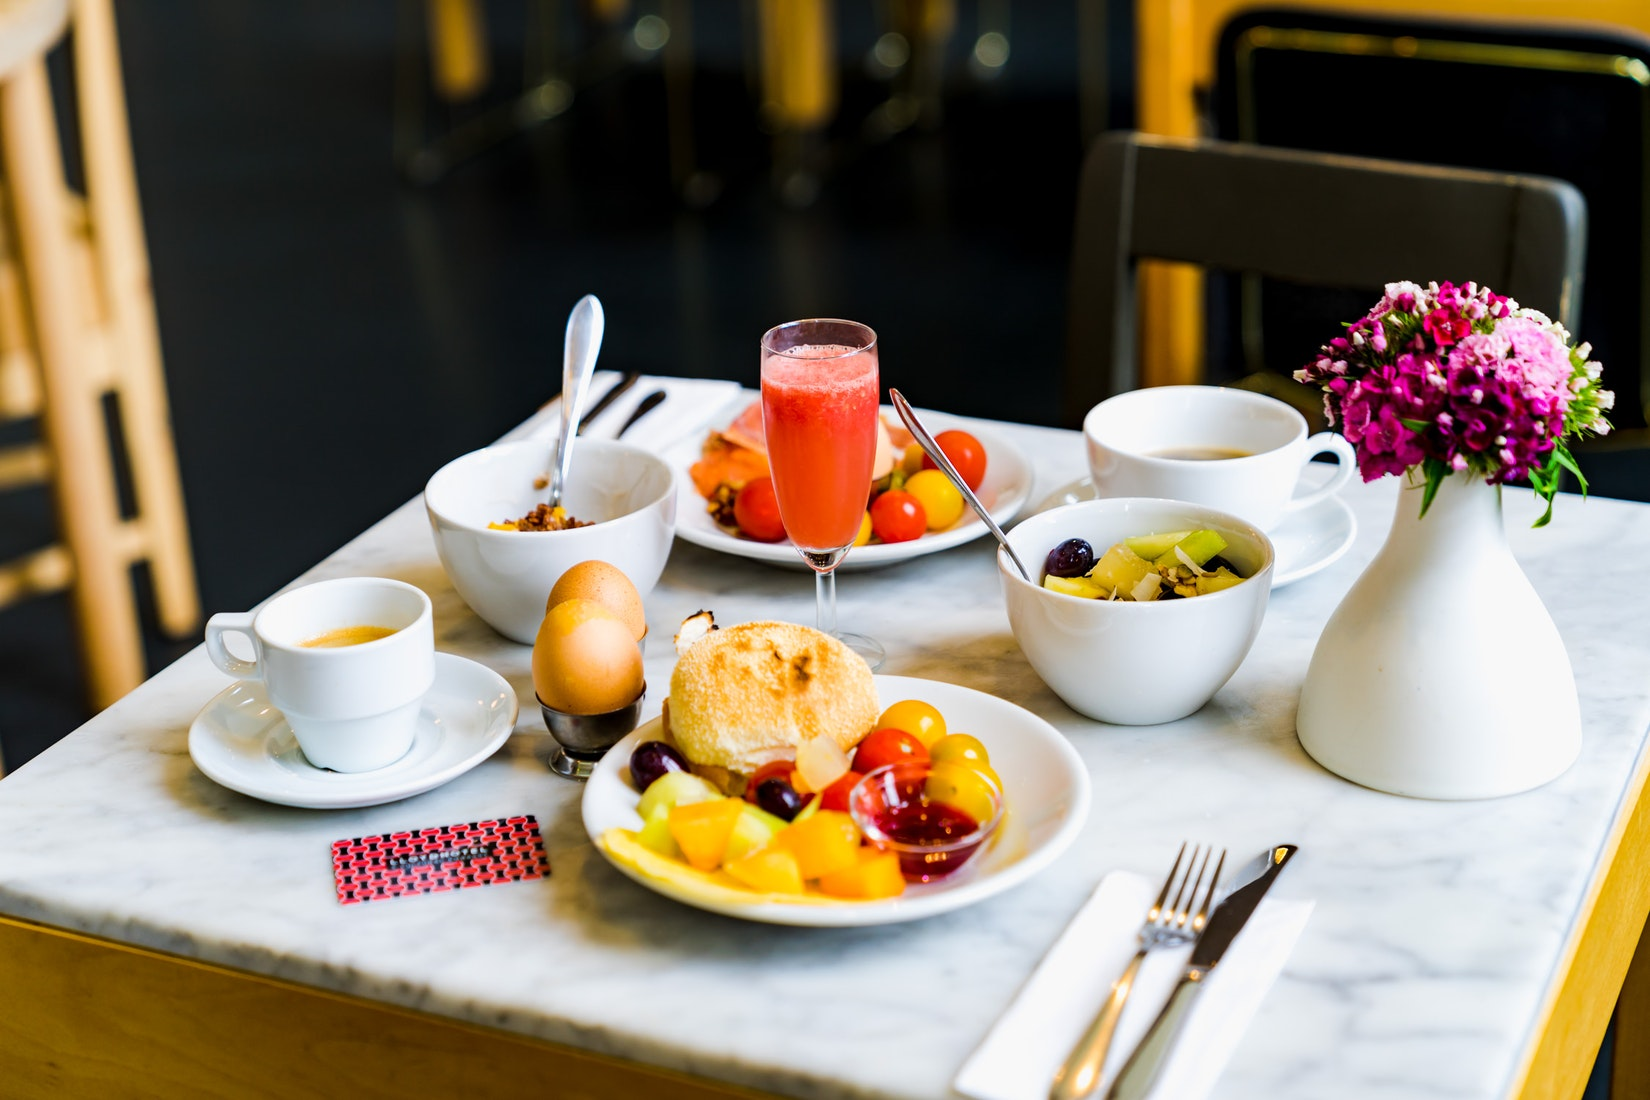 Breakfast spread at Lloyd Hotel